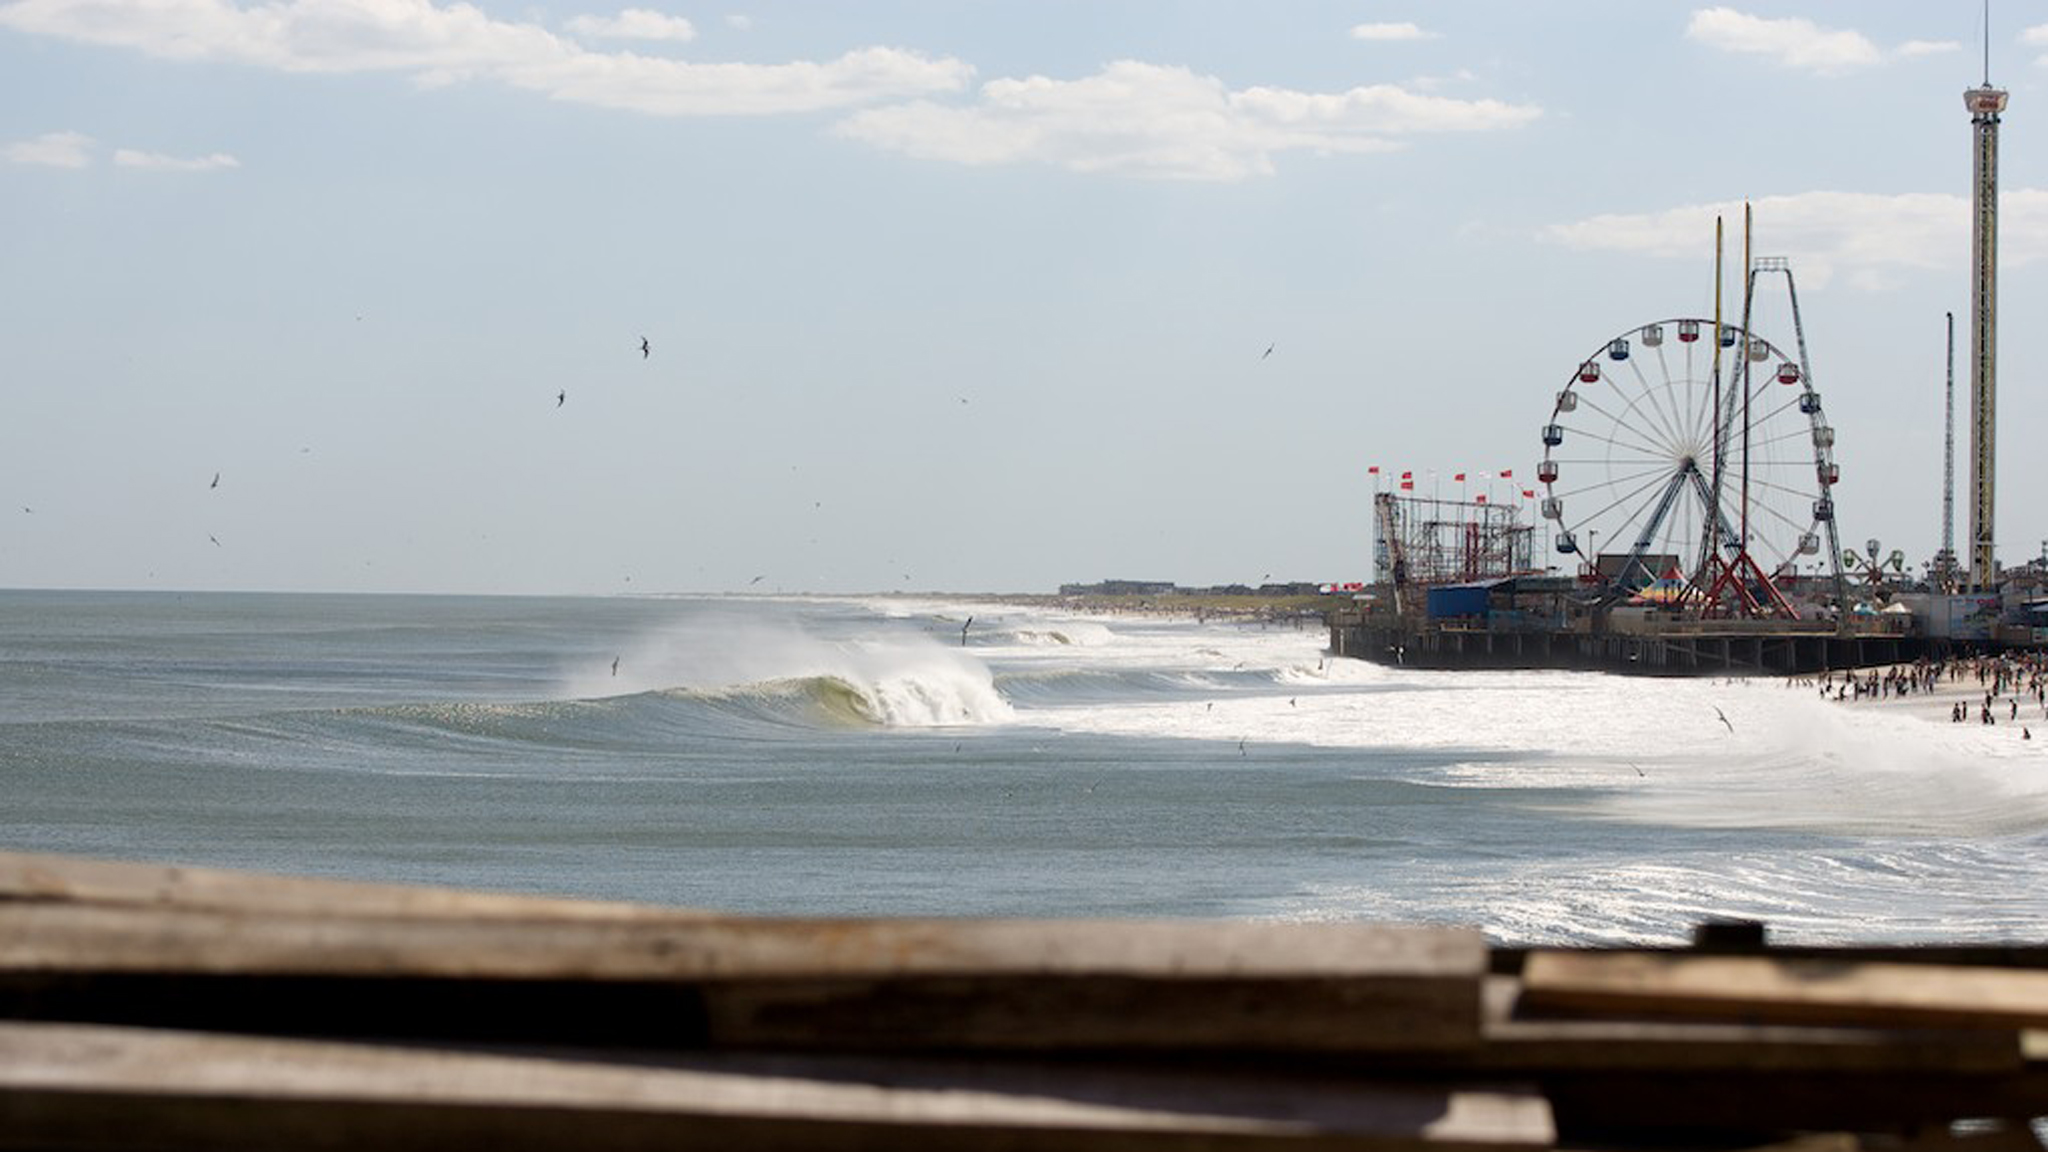 These towns were iconic of the New Jersey Shore to the tri-state area and hold decades of surfing history. They had just begun to rebound from SuperStorm Sandy.